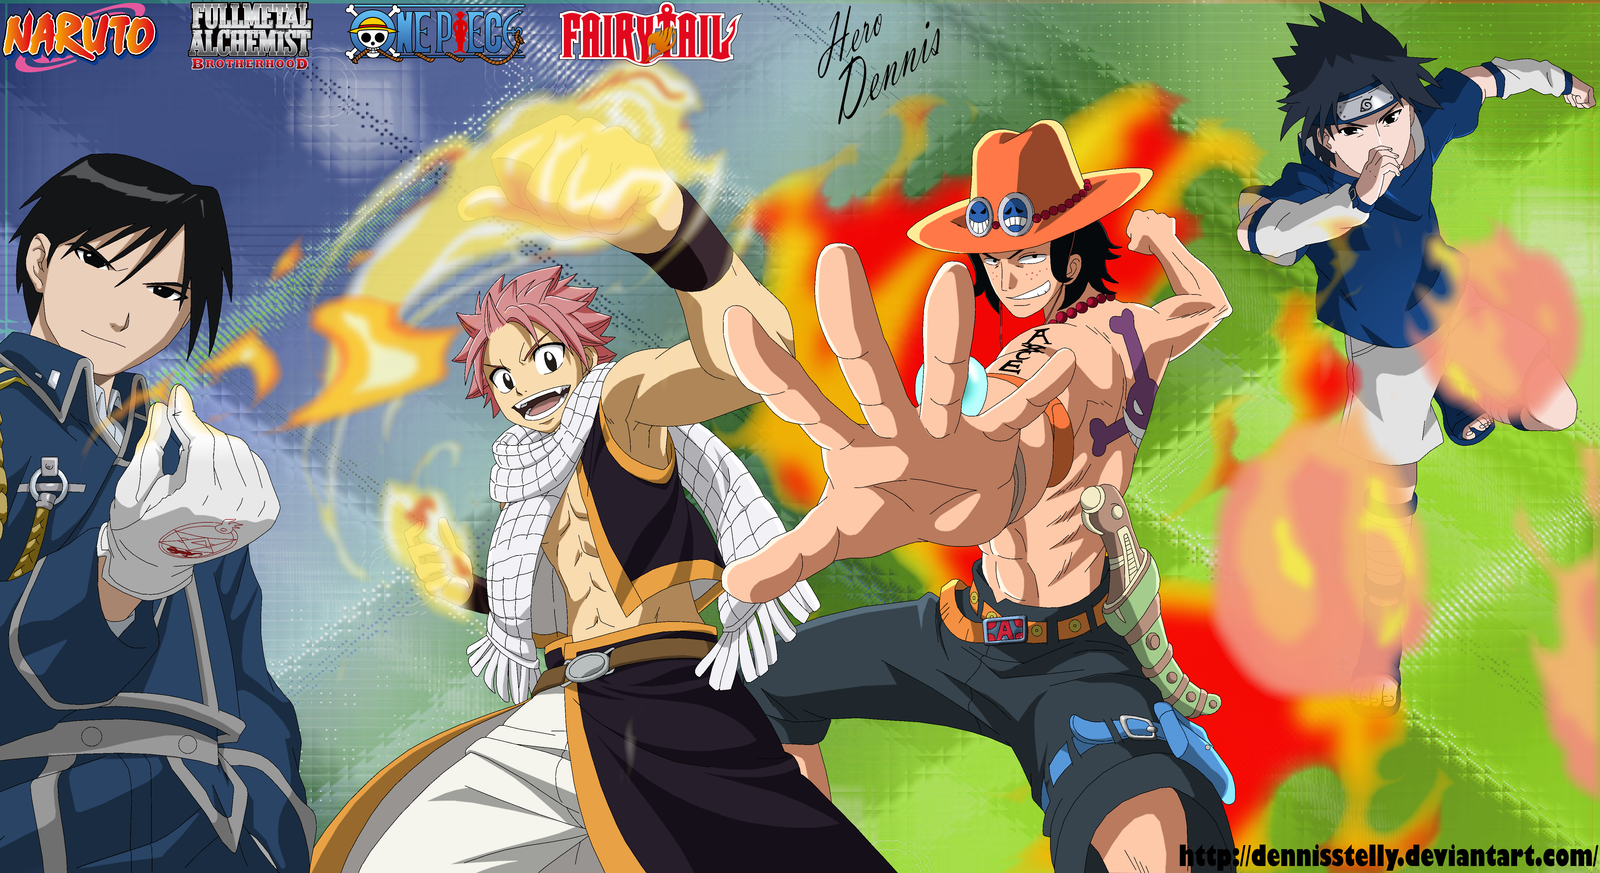 Anime Characters Using Fire : Anime crossover fire users characters by dennisstelly on